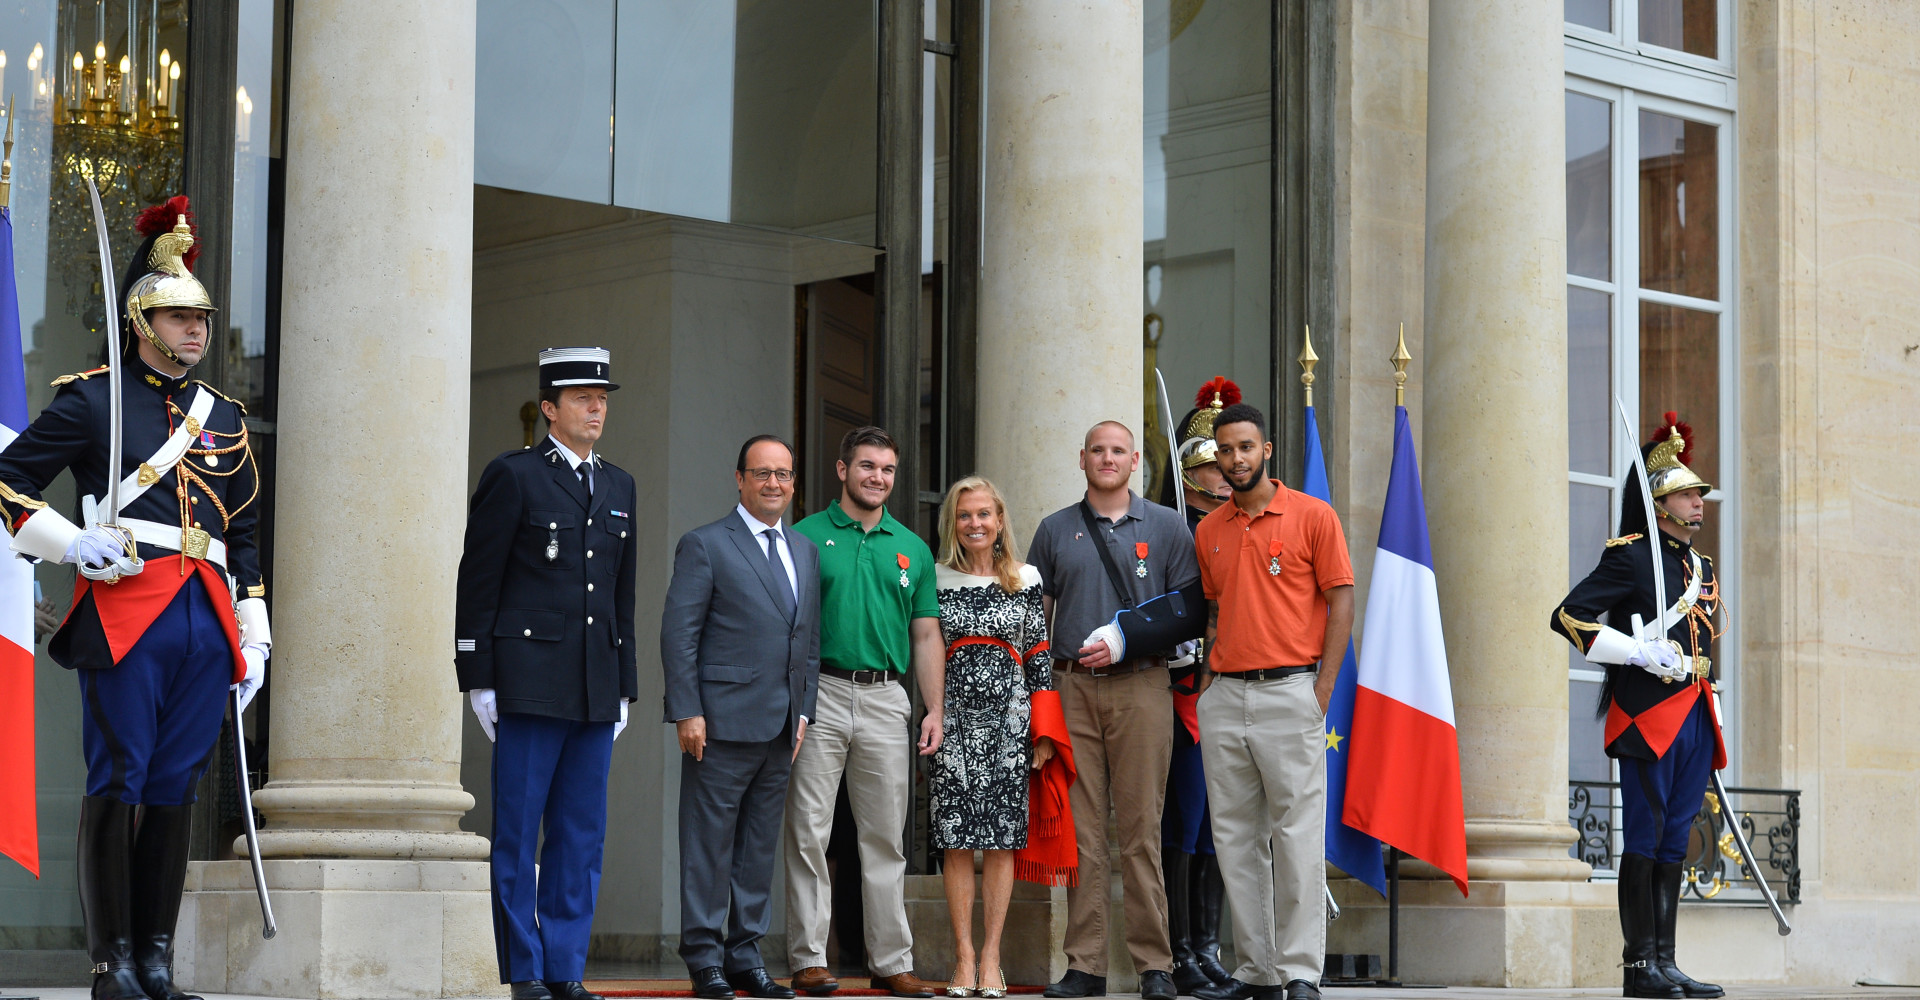 French President Francois Hollande (L) poses with Americans Alek Skarlatos (2nd L), Spencer Stone (2nd R) and Anthony Sandler (L), and US ambassador to France Jane D. Hartley (C) after a ceremony in their honor at the Elysee Palace, in Paris, France on August 24, 2015. The three American friends and British man Chris Norman have been awarded the Legion of Honor medal for bravery. They prevented a massacre aboard a Thalys high-speed train en route to Paris from Amsterdam on Friday when a heavily armed Moroccan gunman known as Ayoub El Khazzani opened fire. Photo by Christian Liewig/Sipa USA